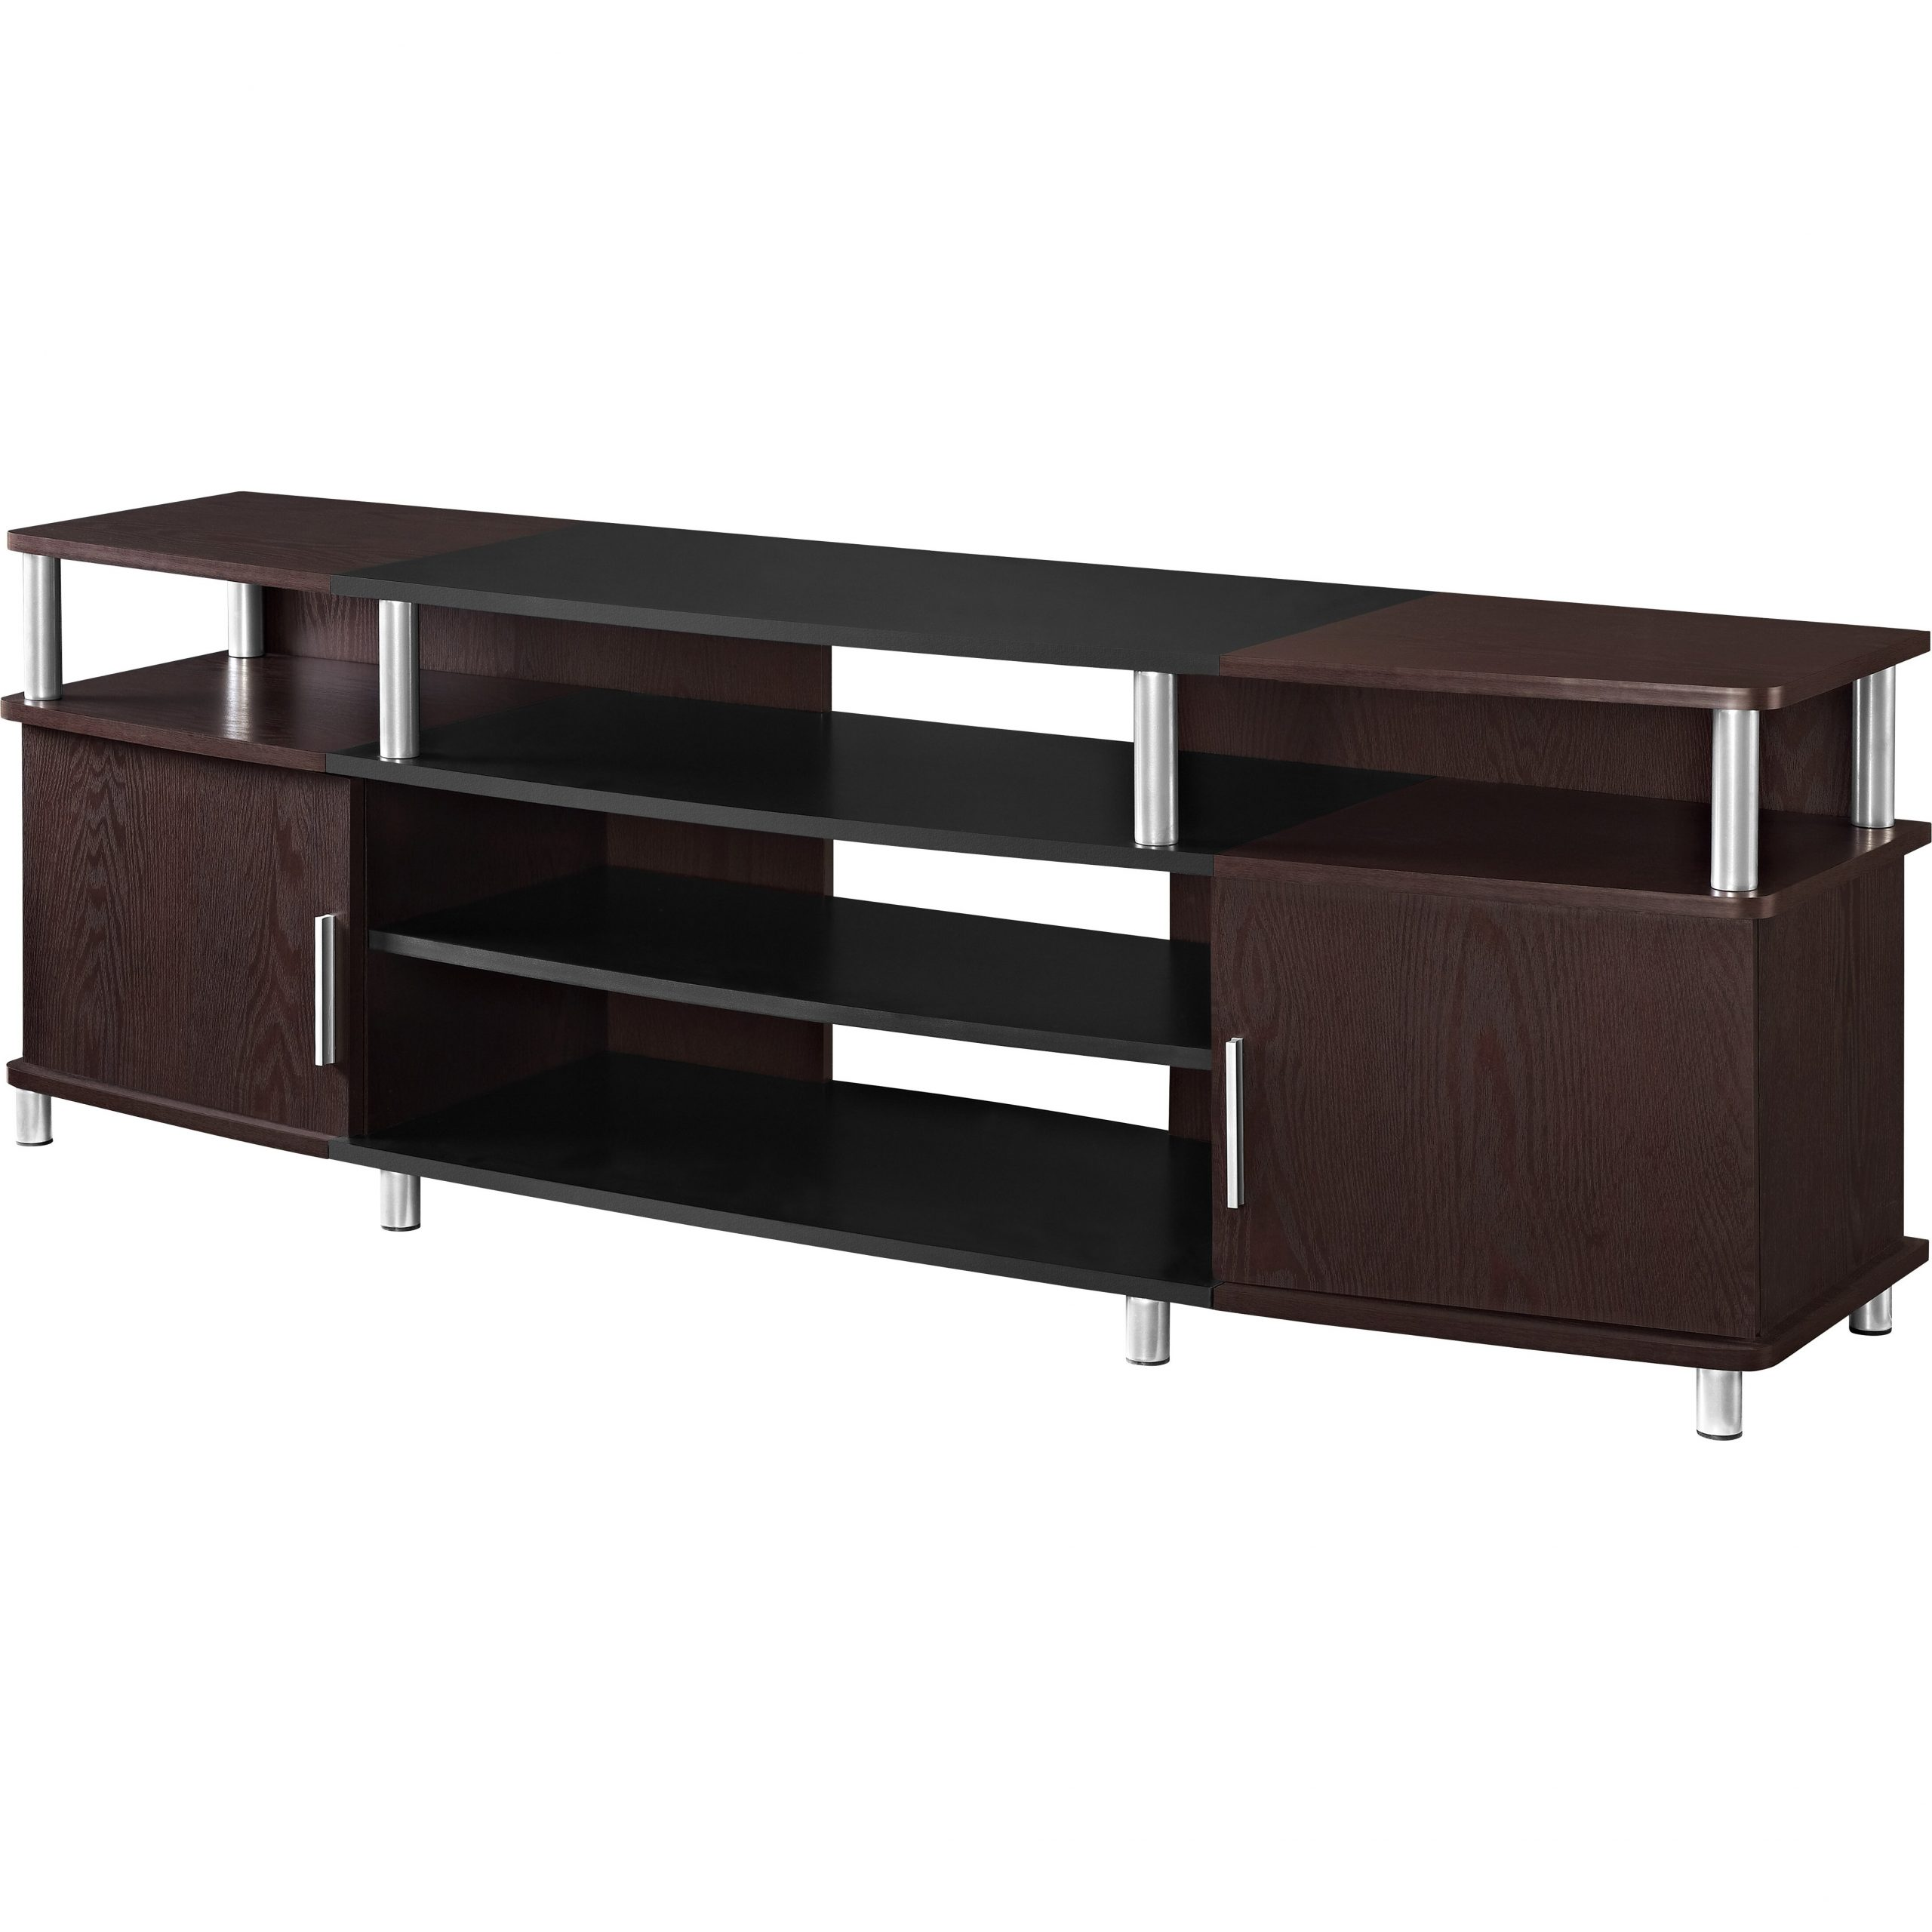 Carson Tv Stands In Black And Cherry With Fashionable Altra Carson Tv Stand & Reviews (View 9 of 10)